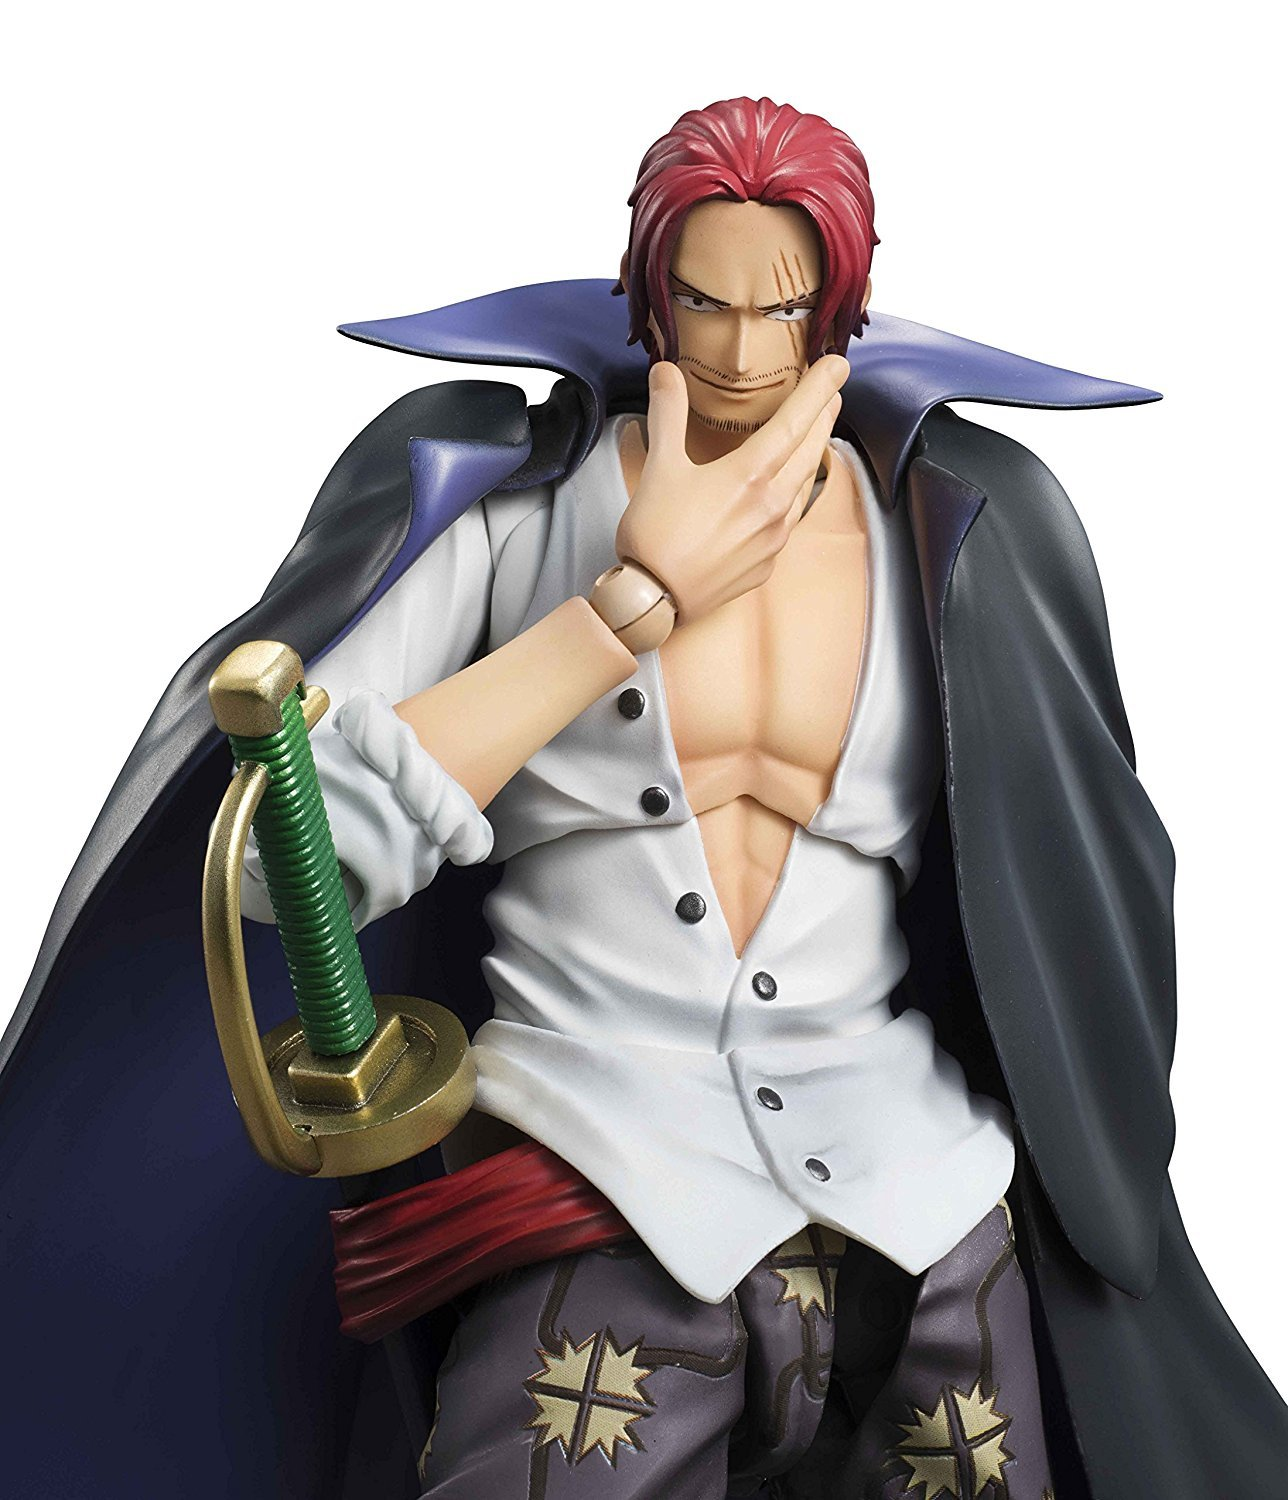 Variable Action Heroes - One Piece Shanks